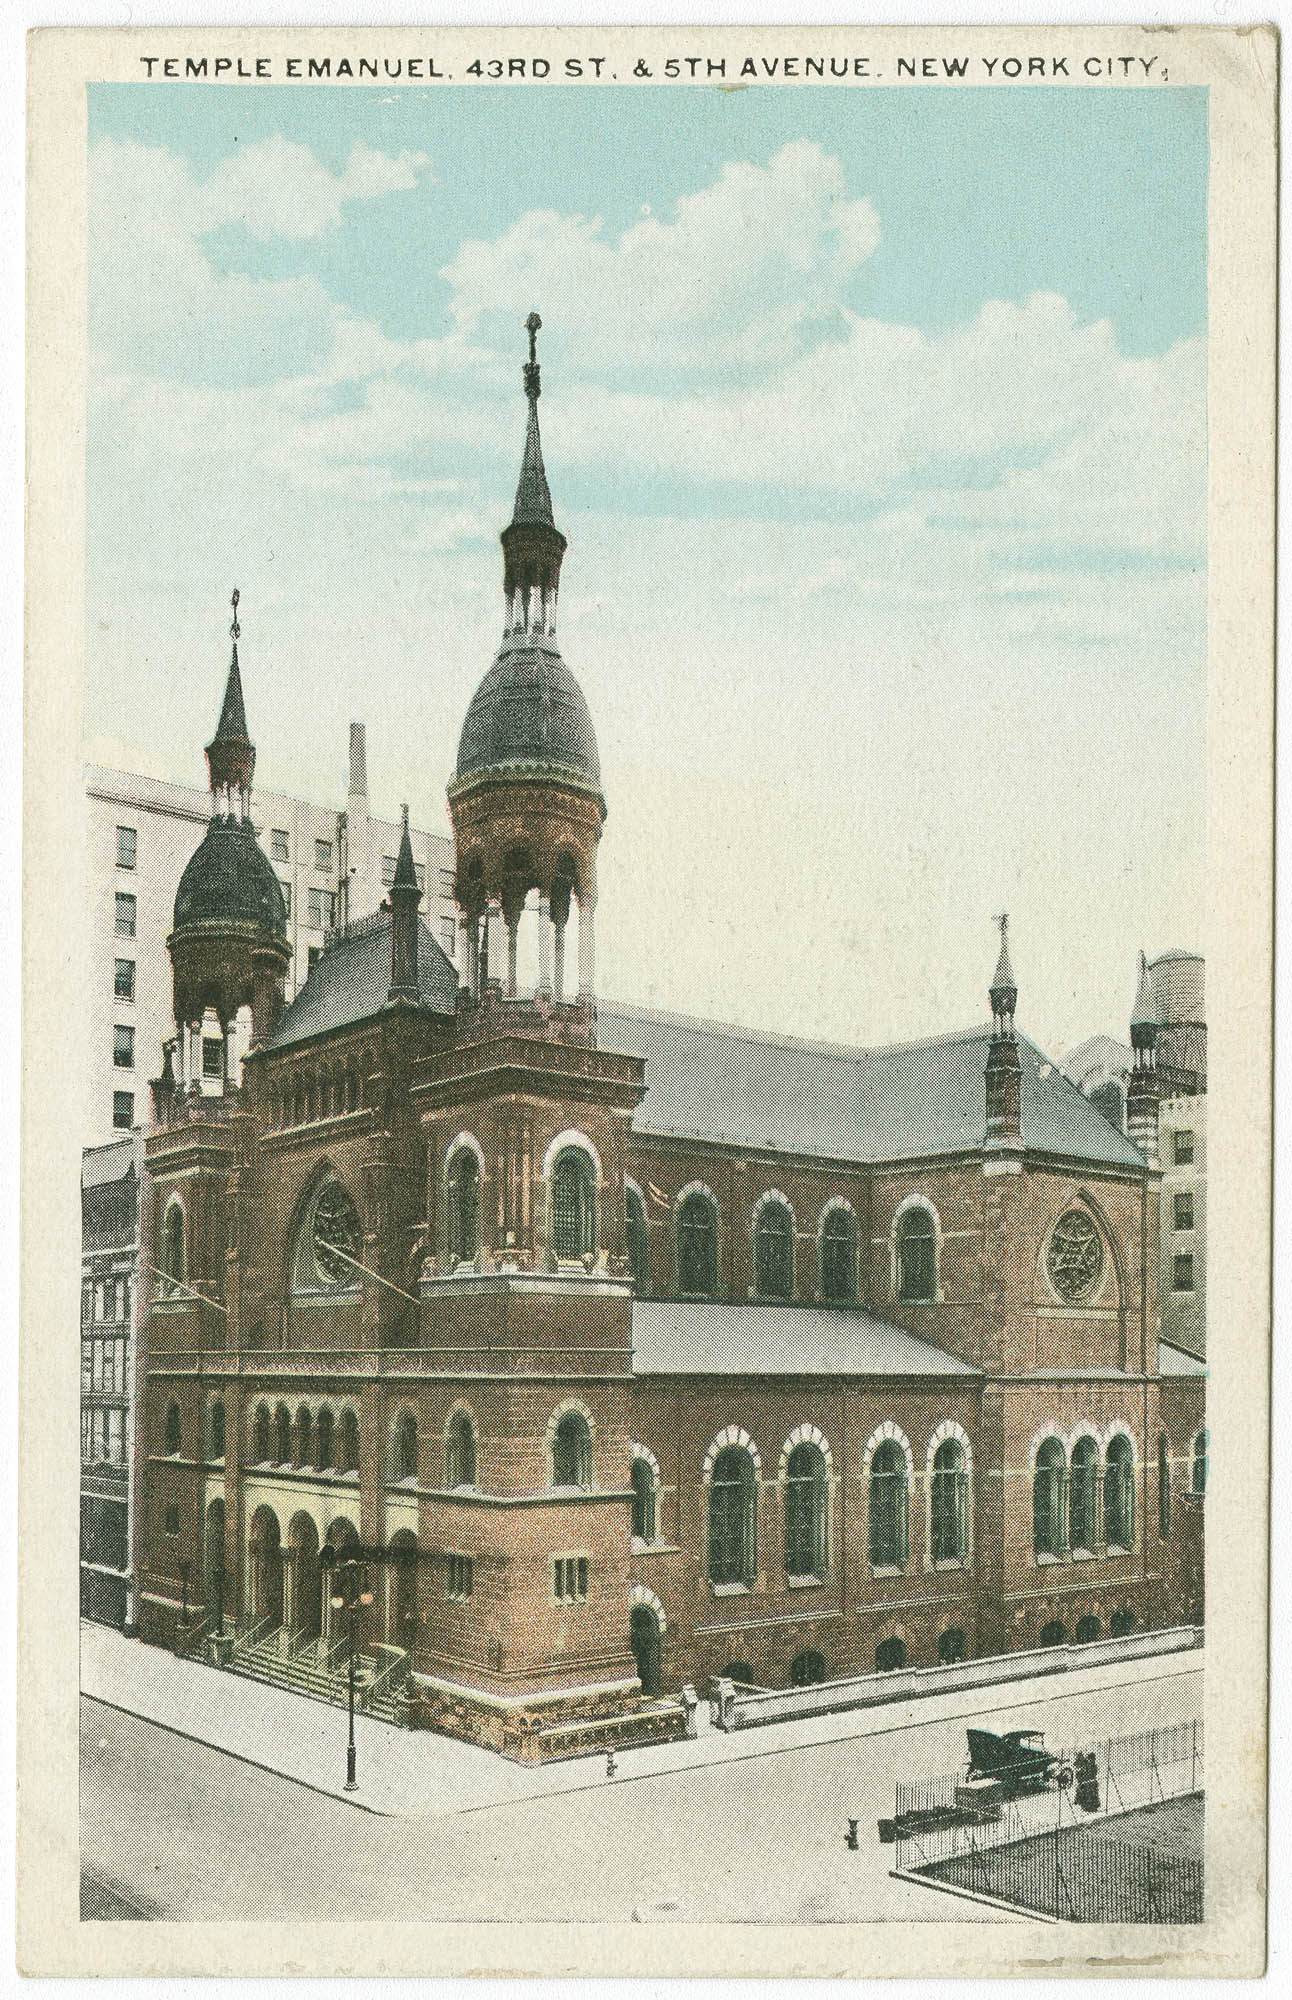 Temple Emanuel, 43rd St. and 5th Avenue, New York City